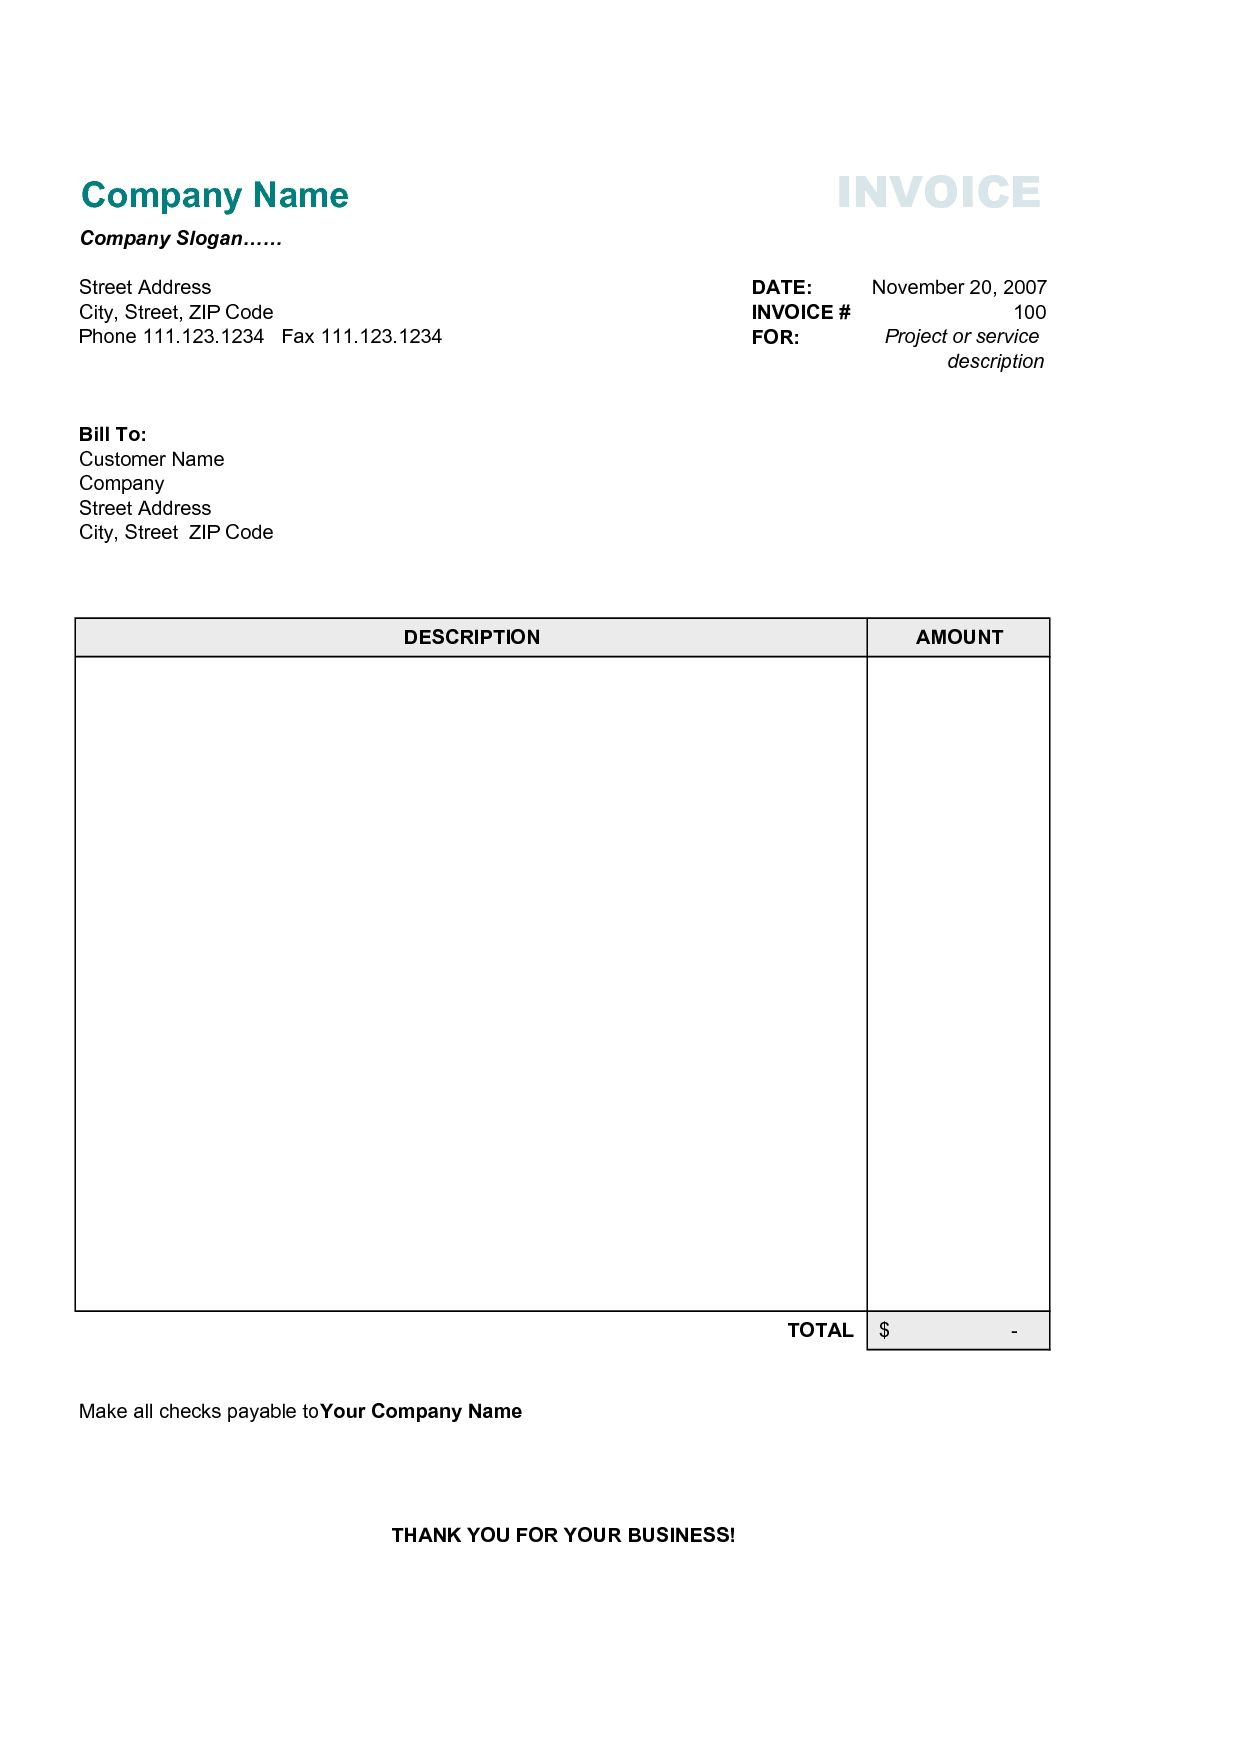 Best Photos Of Printable Commercial Invoice Sample Business - Free sample invoice for service business